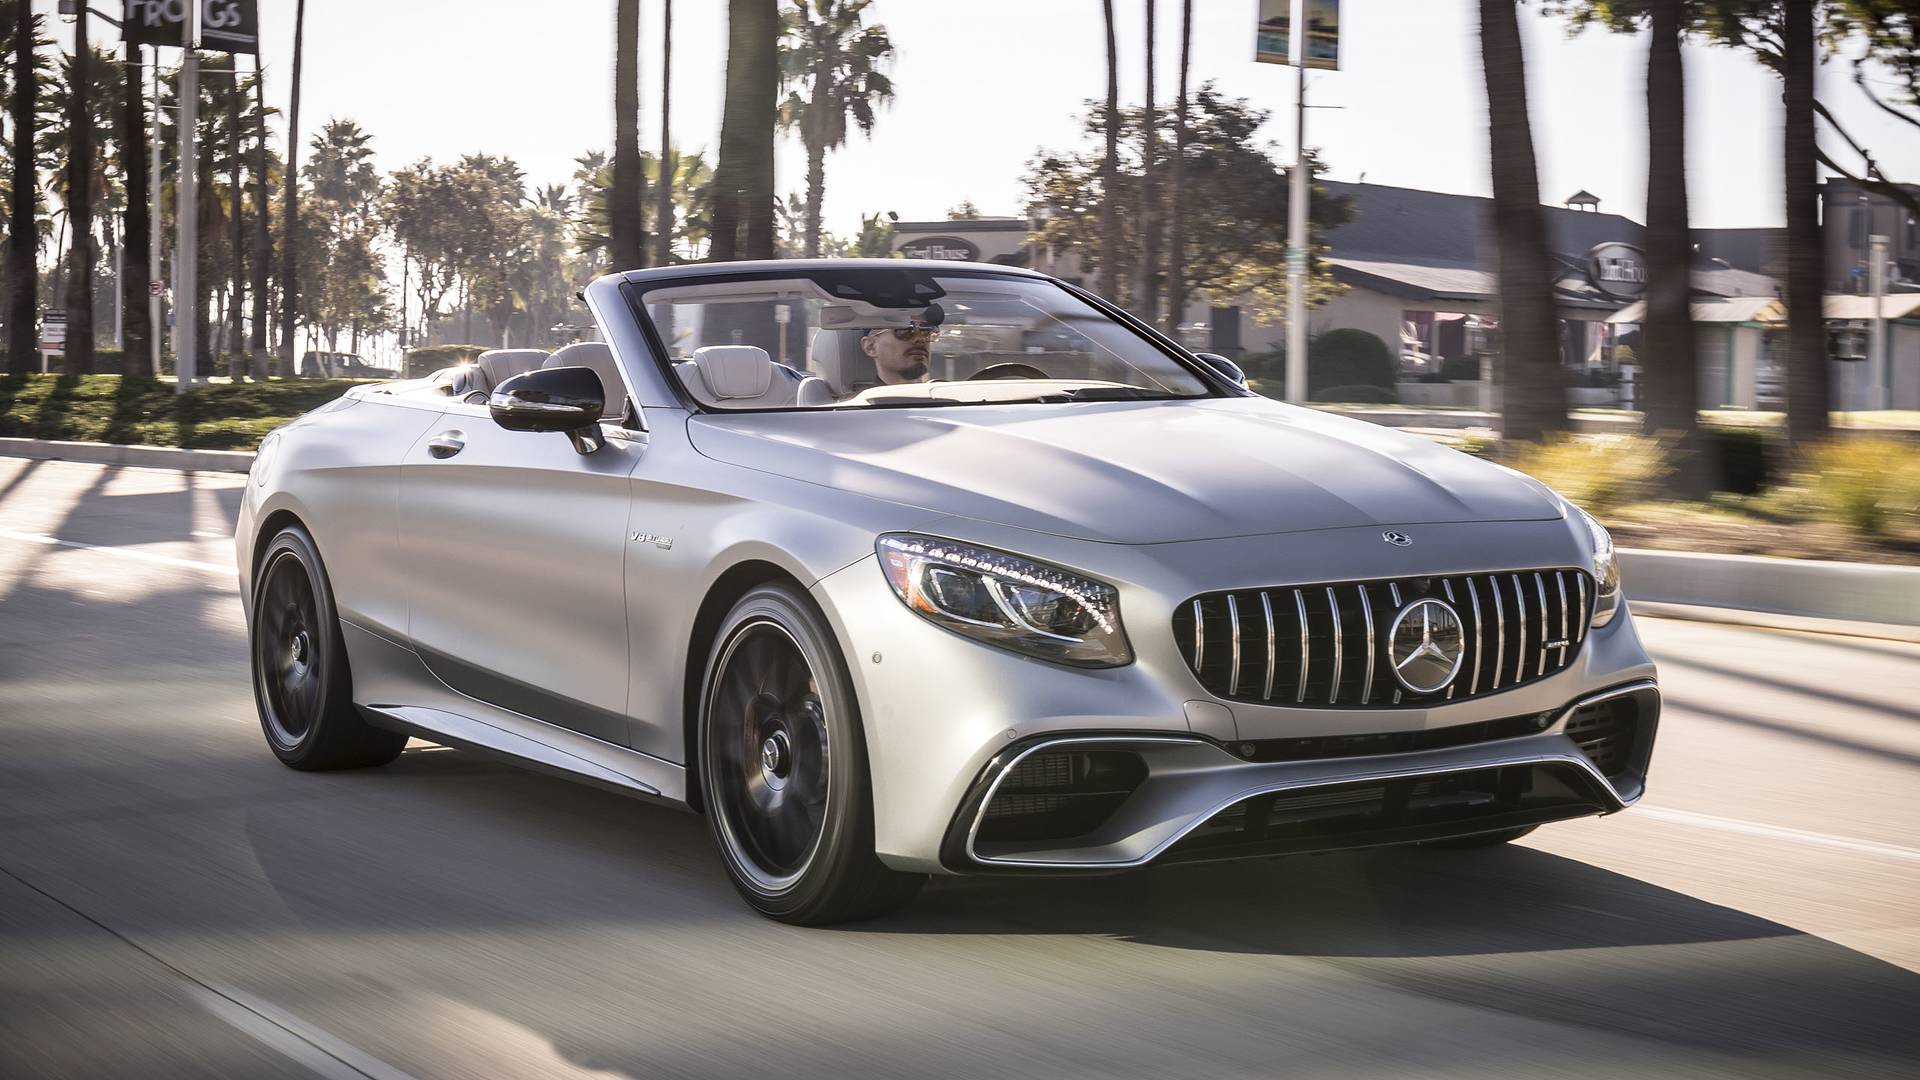 2018 mercedes amg s63 cabriolet review sunshine on fast forward